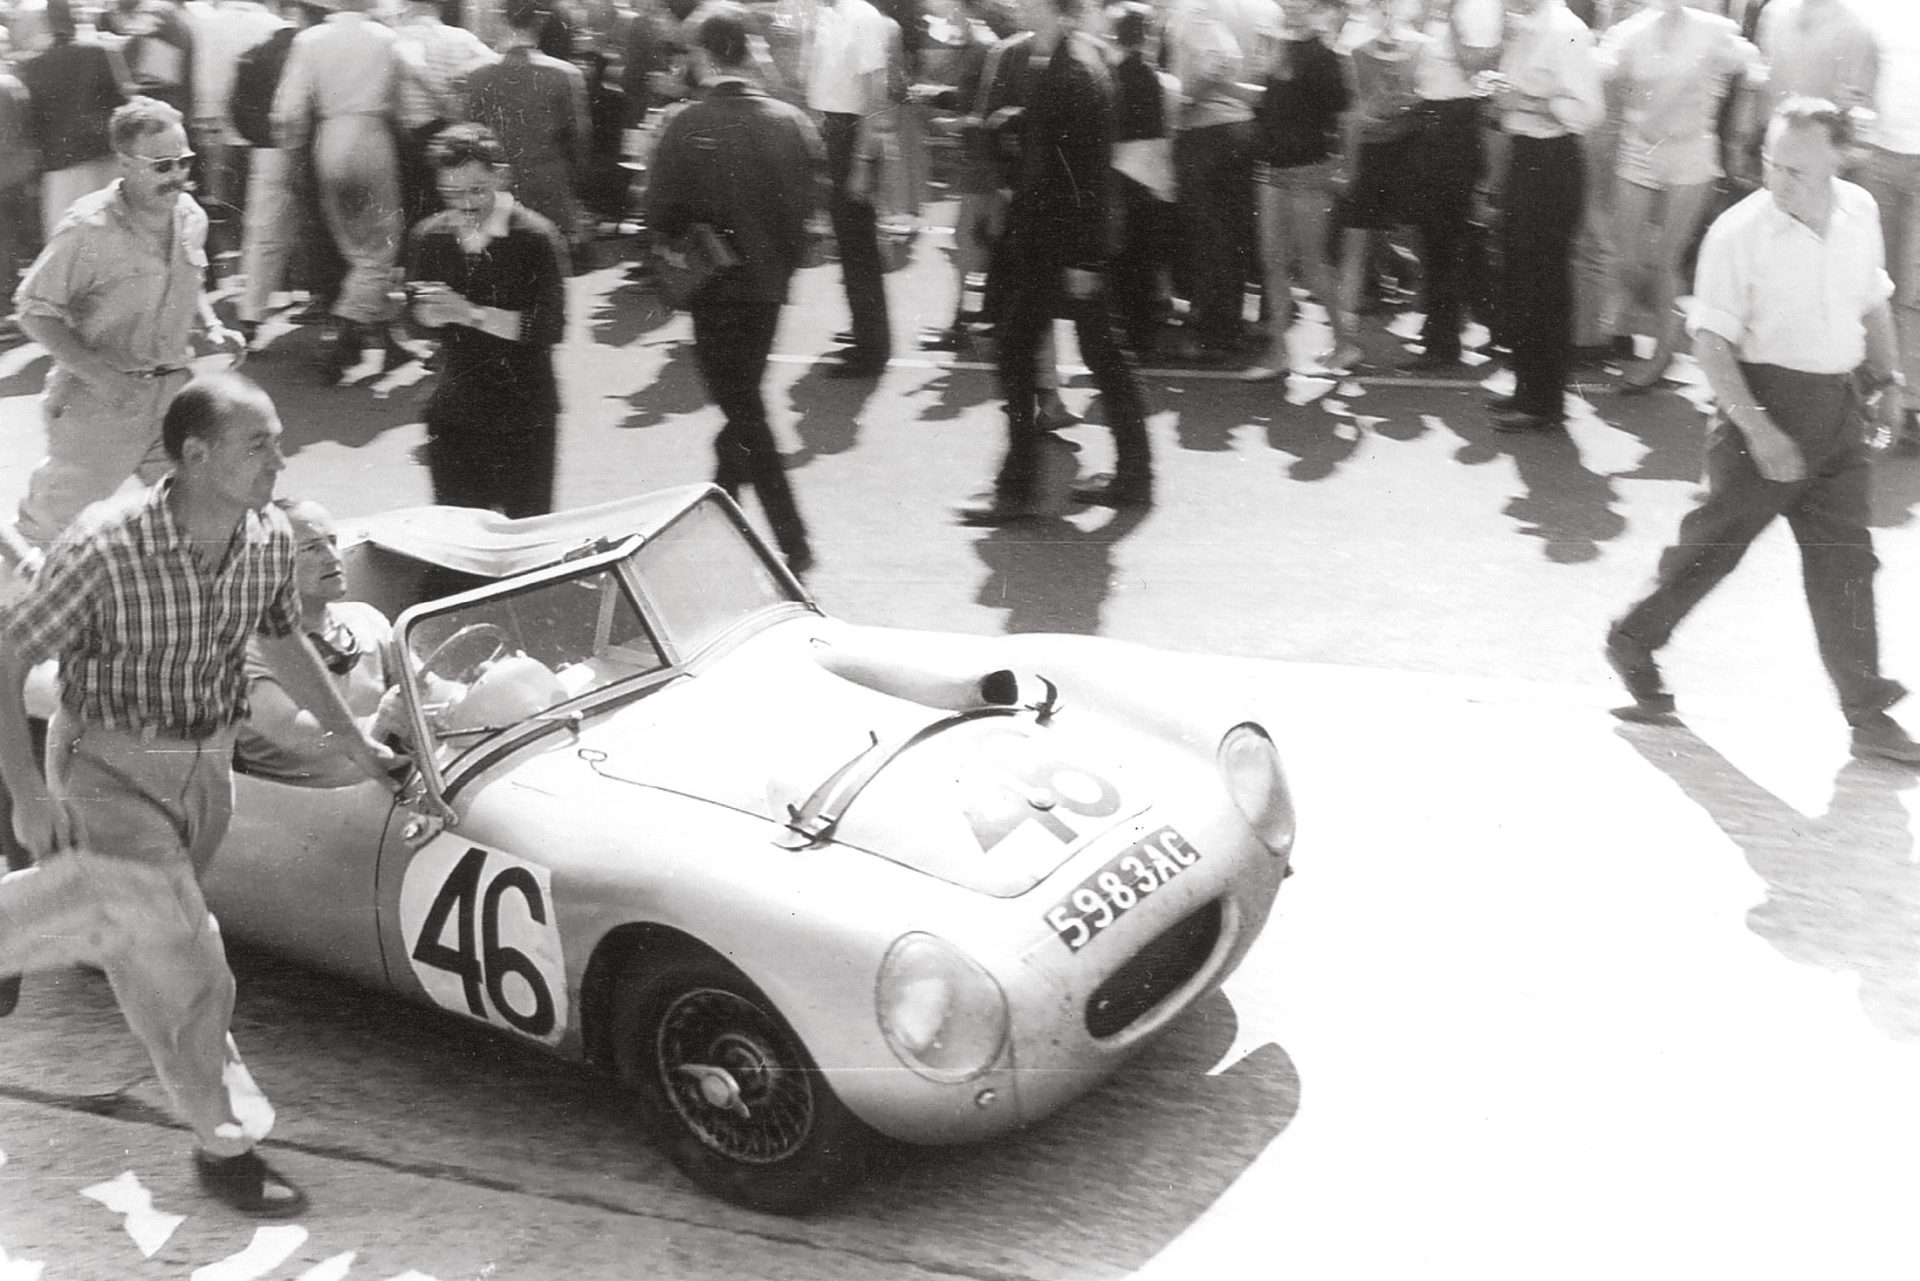 The Austin-Healey Sprite Spider, entered by the tuning firm's chief, Donald, takes the finish in 16th